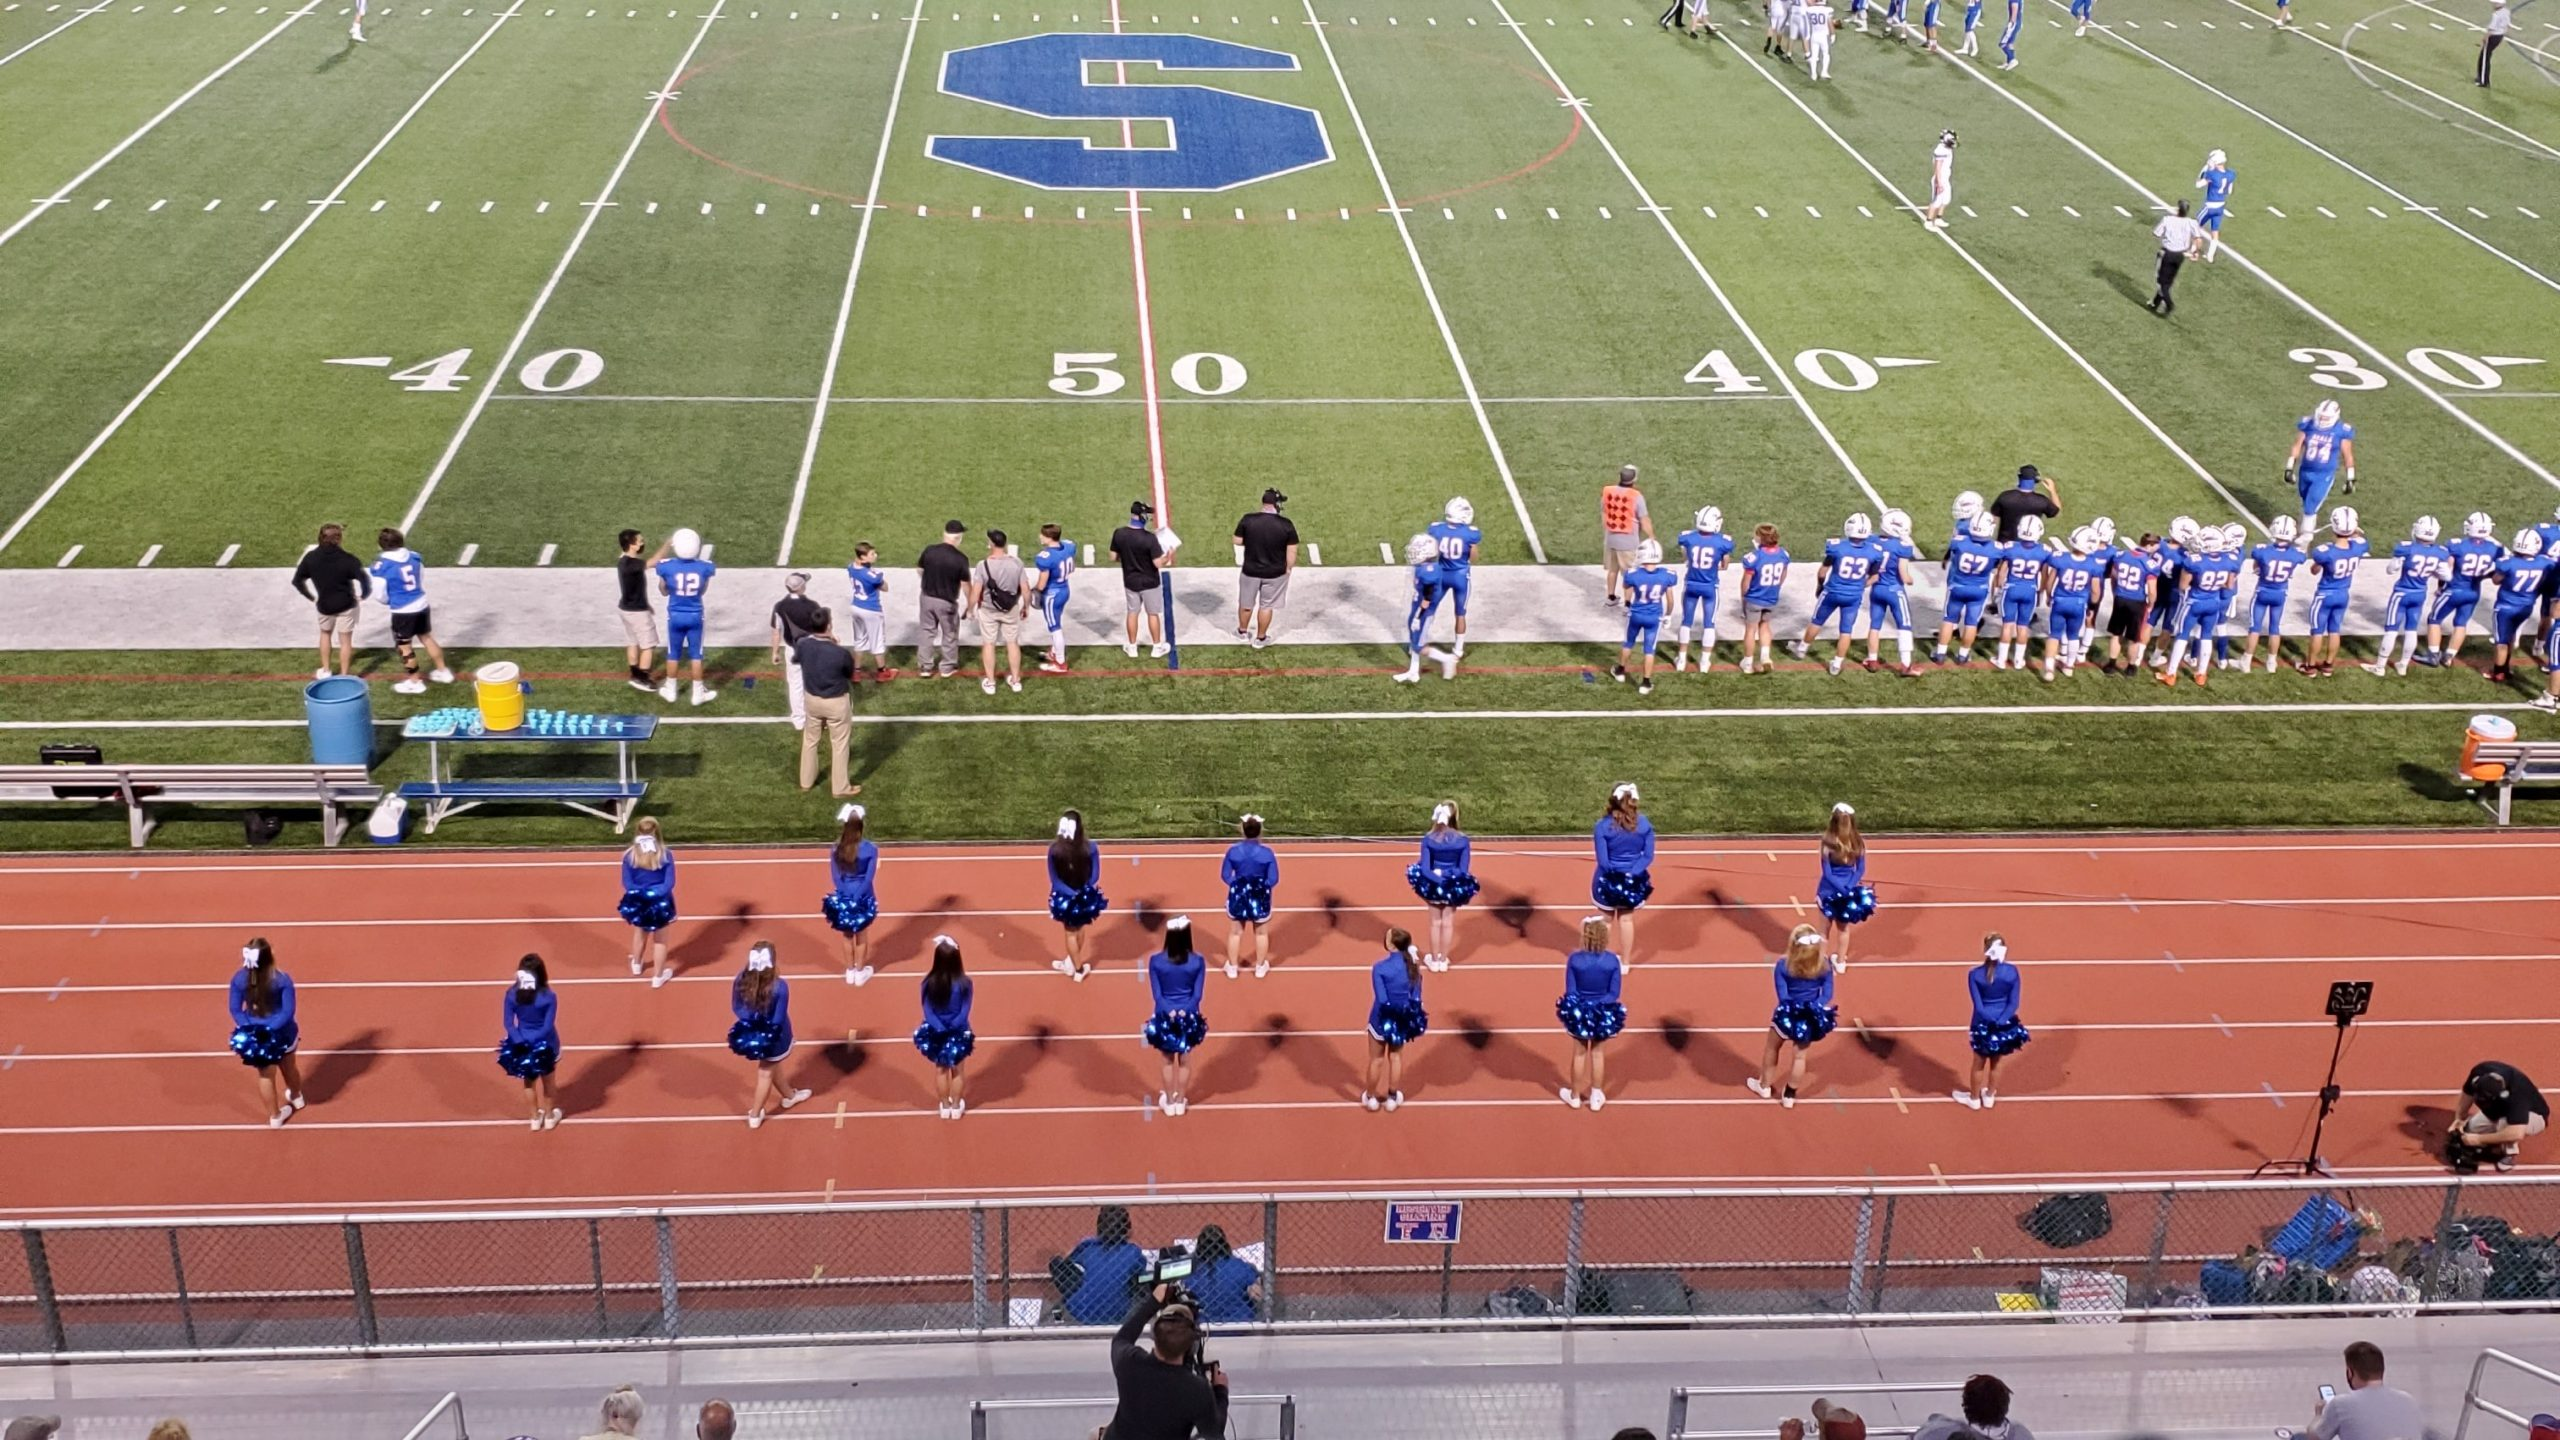 Seals Cheerleaders and Football Team at First Home Game of the Season